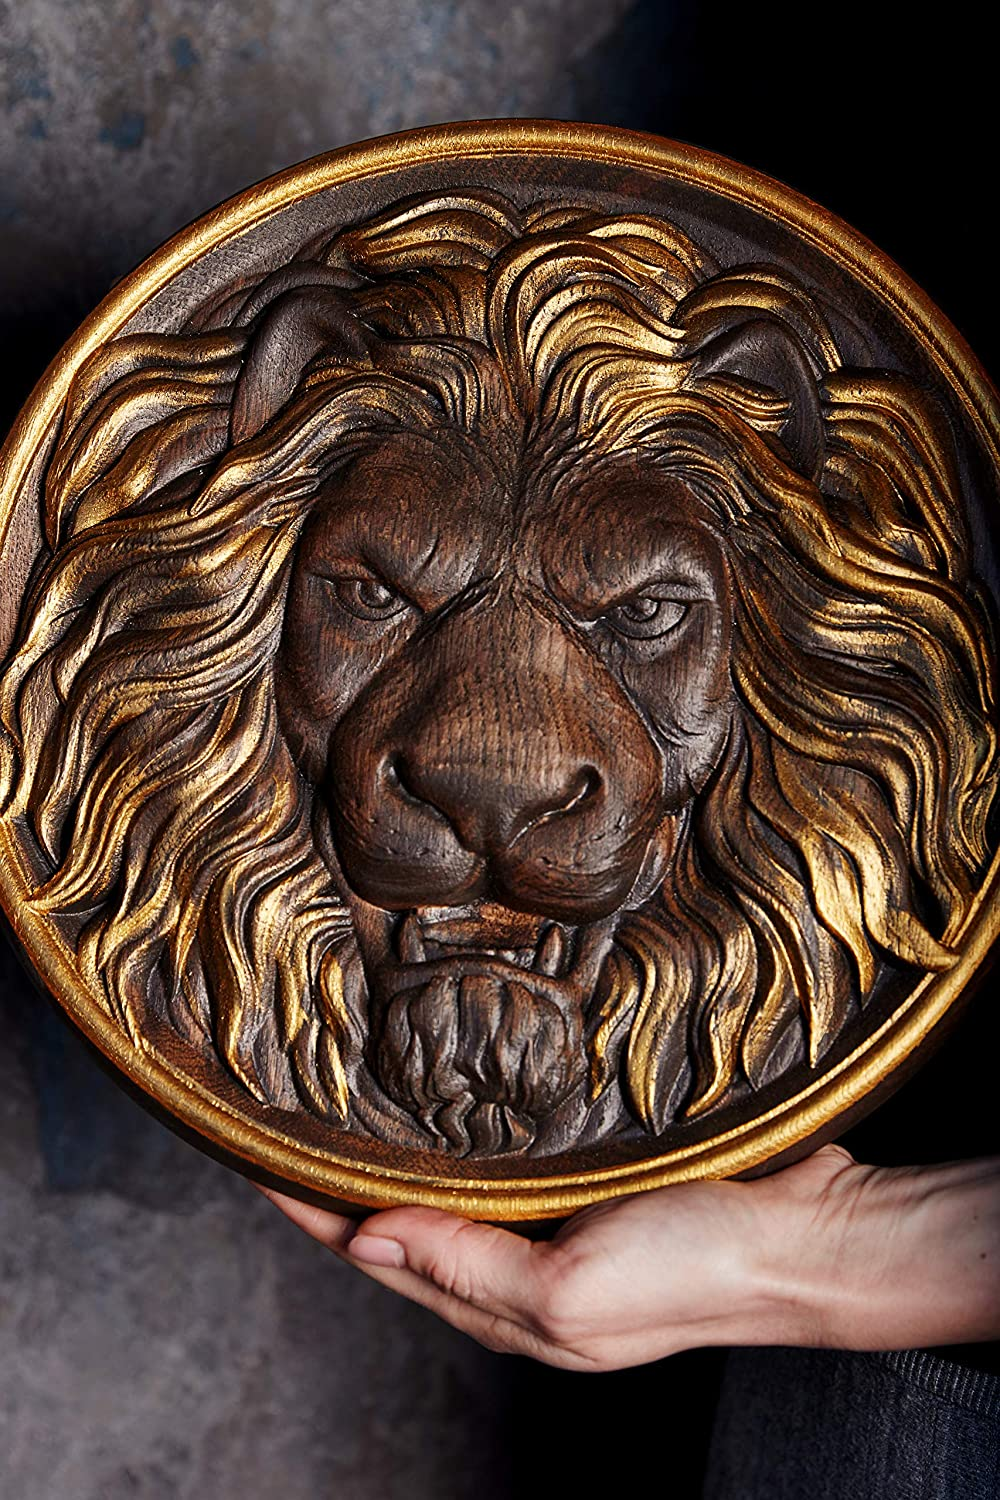 Lion Head Leo Carved Wood furniture appliques Furniture Onlay Wood rosette wood carvings Wall Hanging art